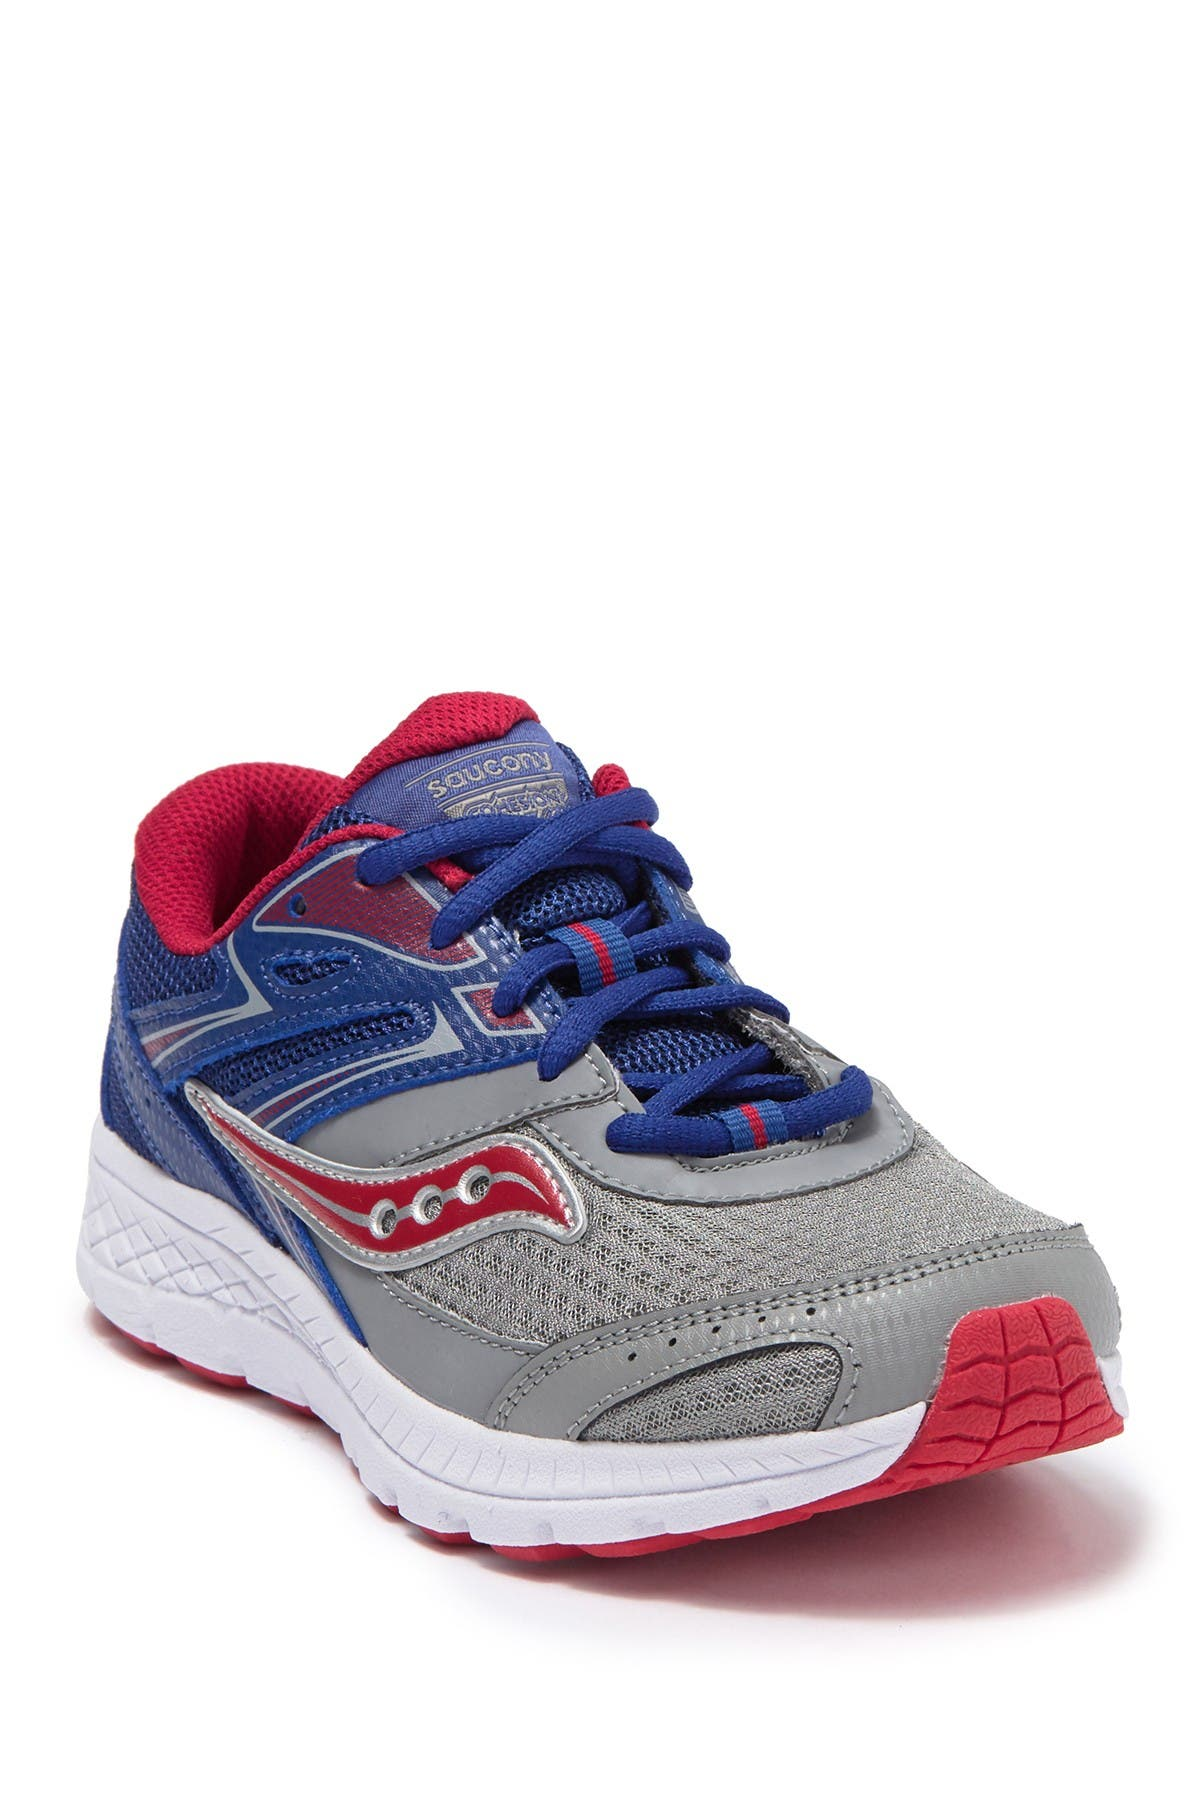 Image of Saucony Cohesion 13 Running Shoe - Wide Width Available